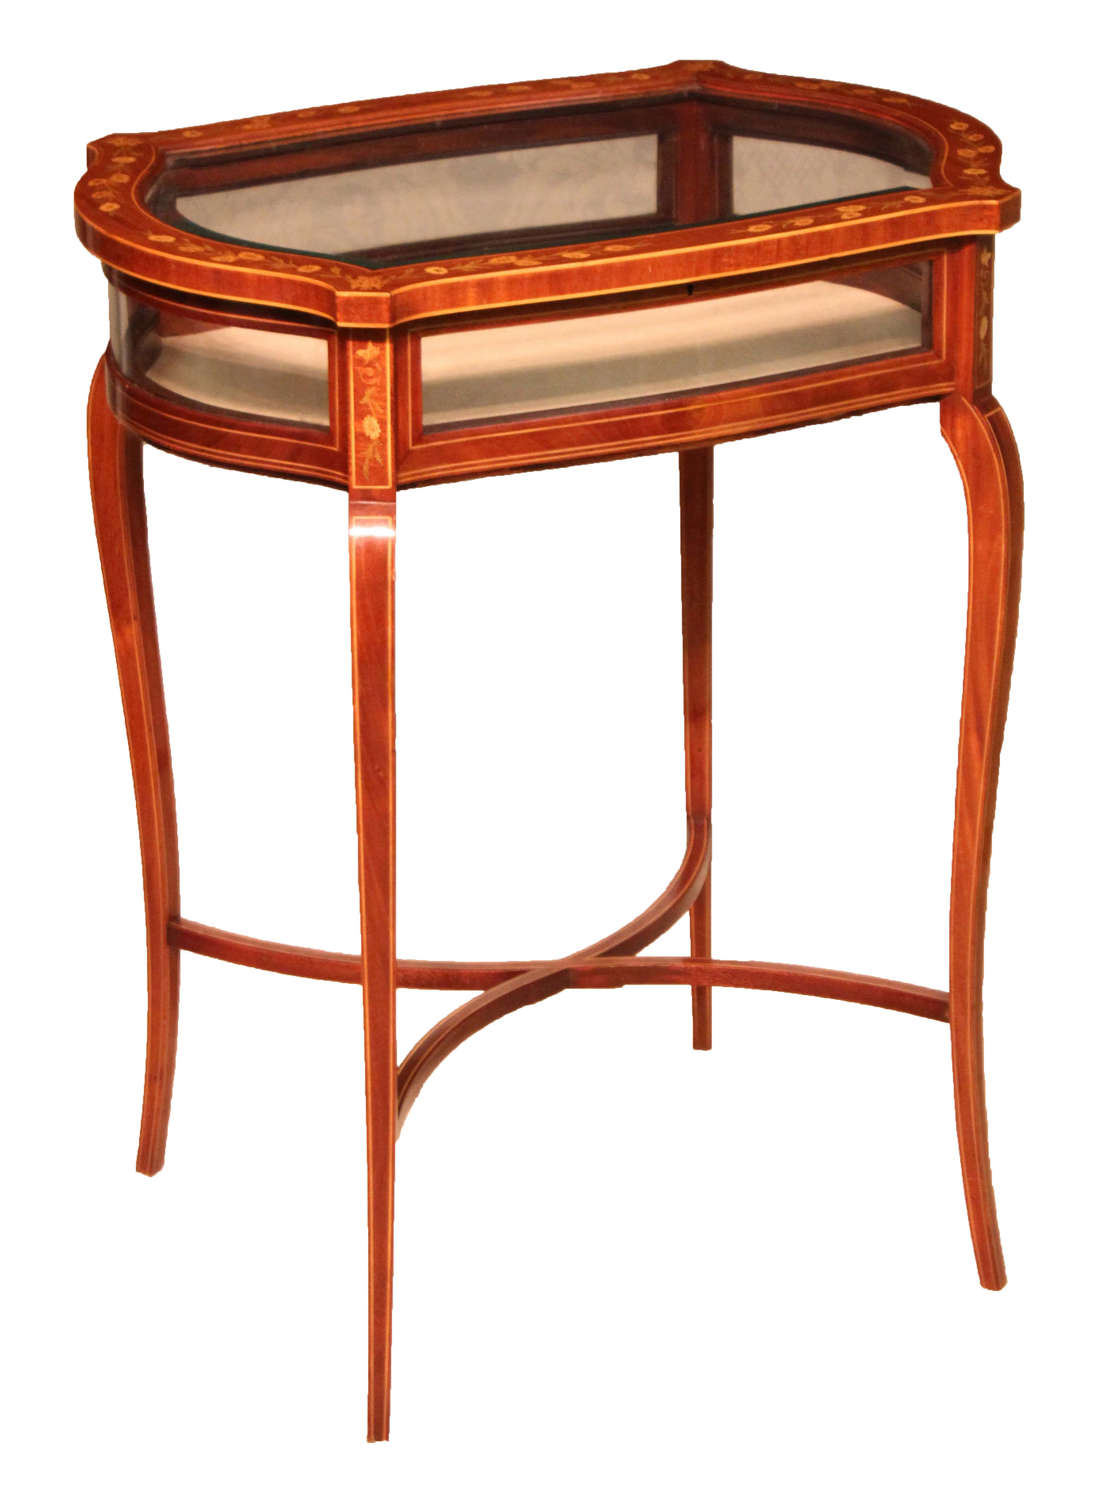 A Late Victorian Mahogany Inlaid Serpentine Shaped Bijouterie Table